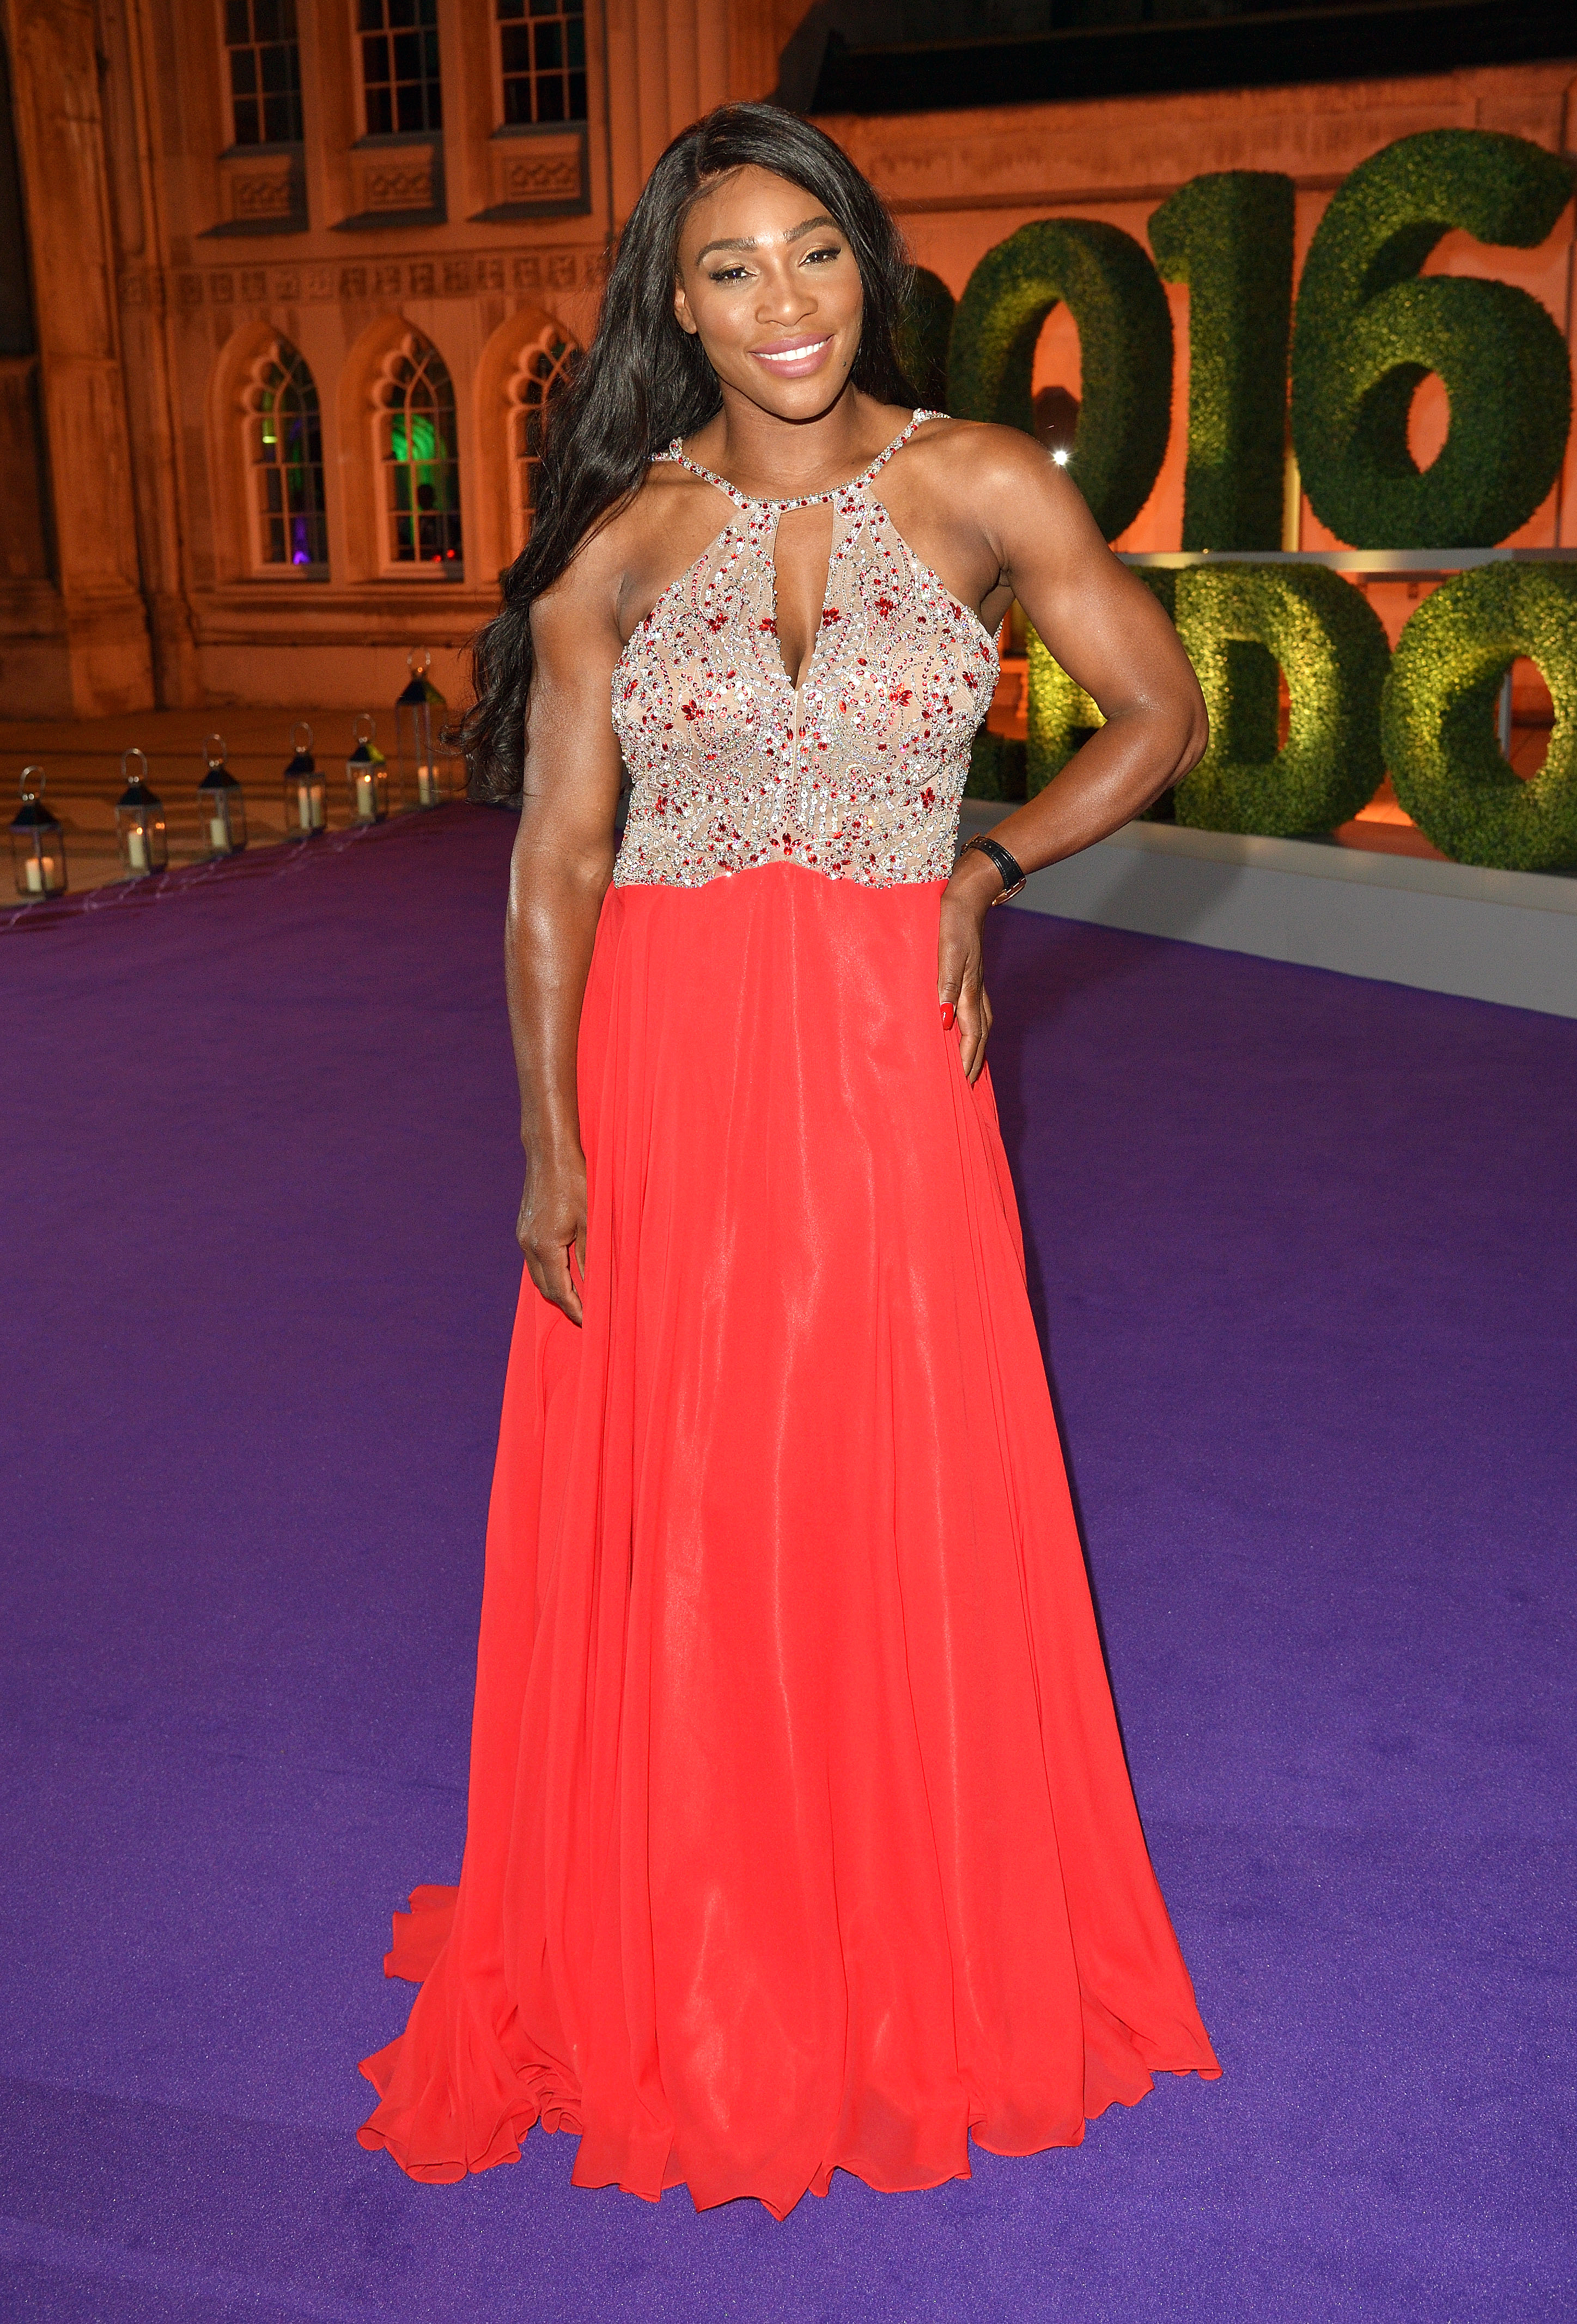 Serena Williams Wins Red Carpet in Coral Dress at Wimbledon Ball: Photo